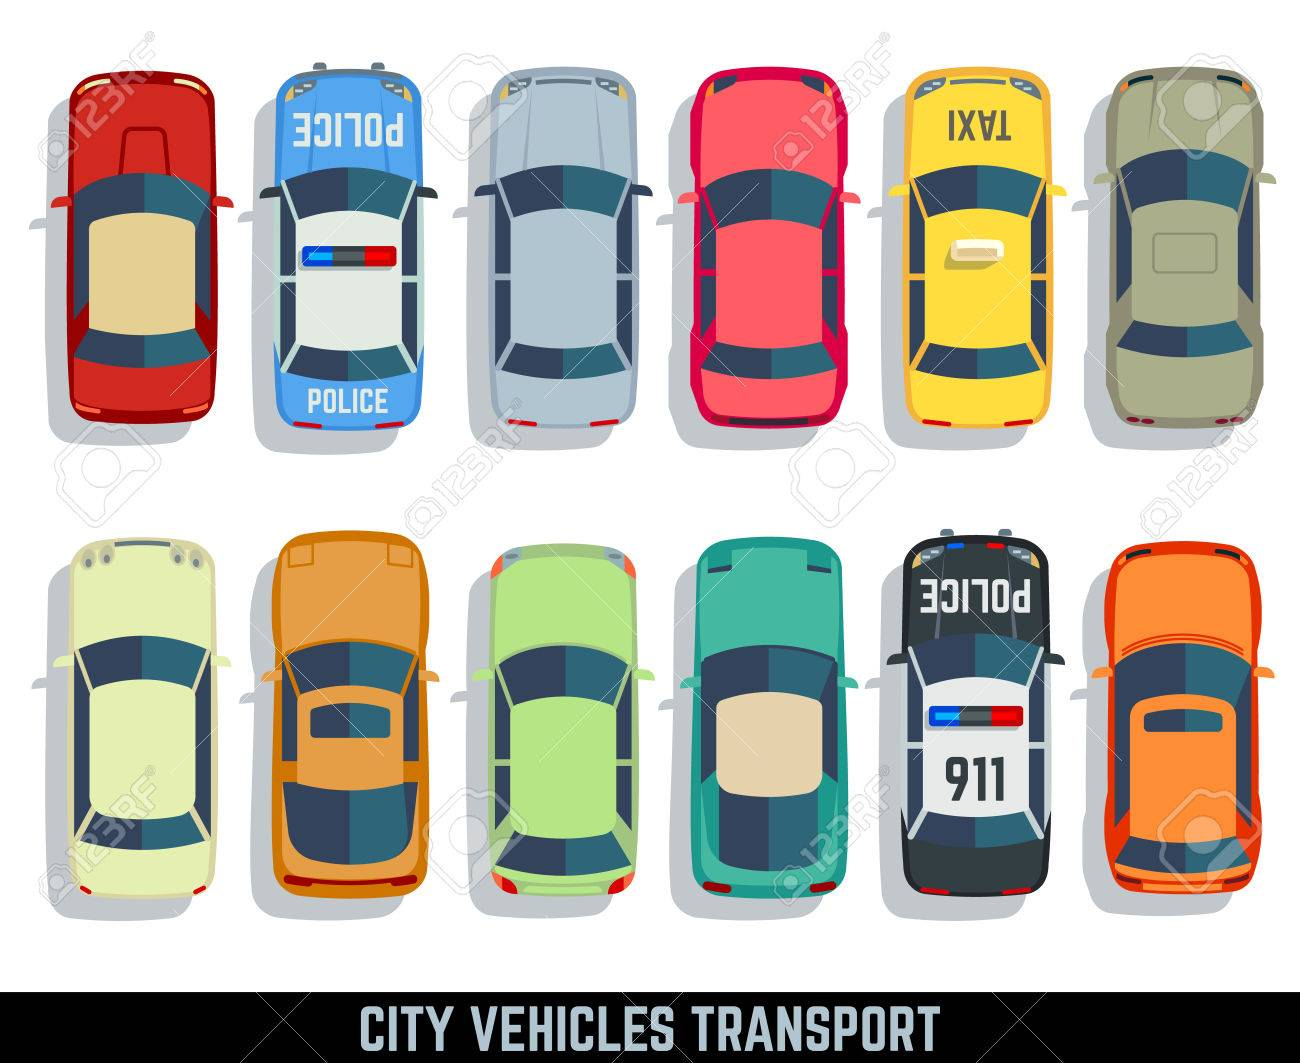 Cars Top View Vector Flat City Vehicle Transport Icons Set